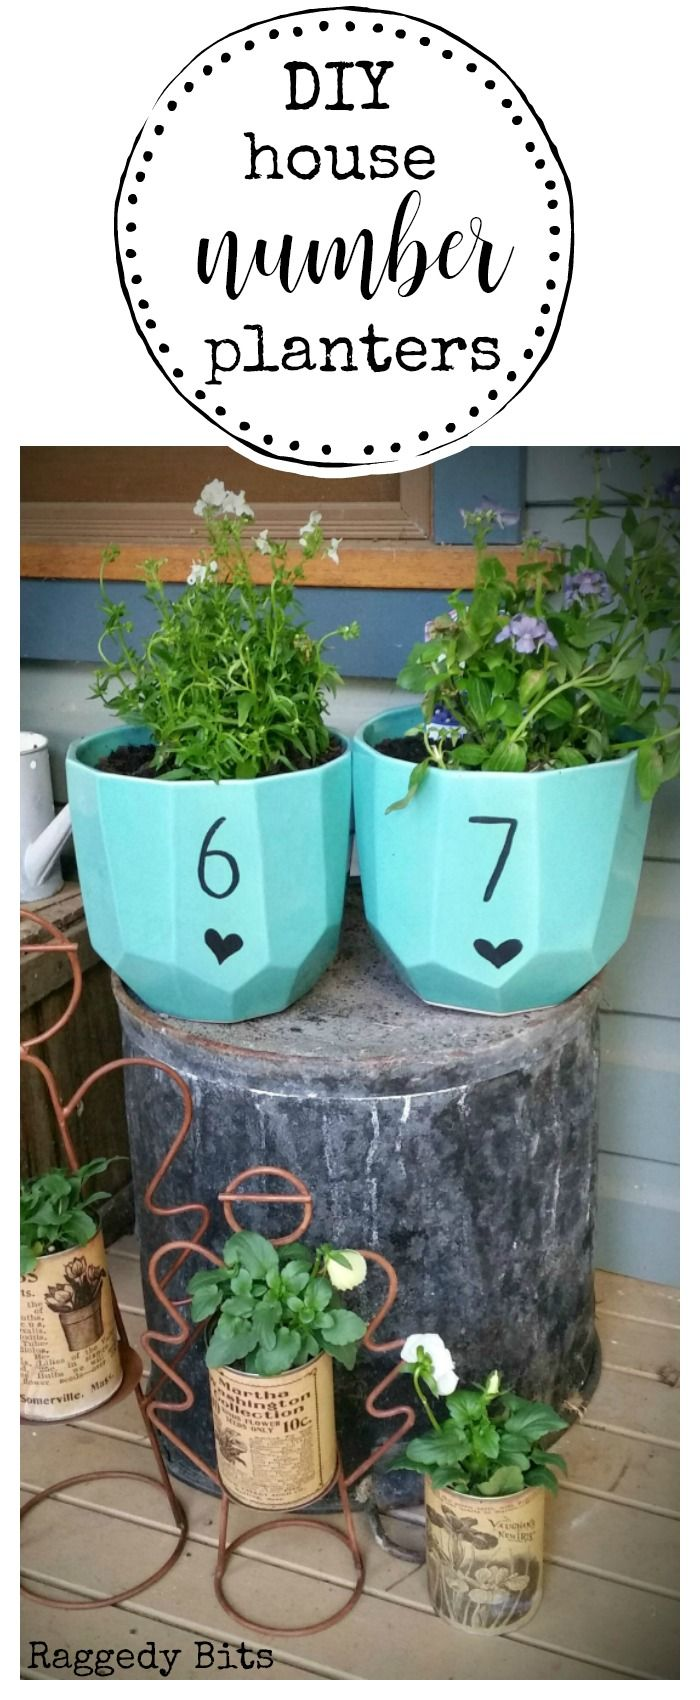 Sharing a fun set of DIY House Number Planters that you can make. If you love just pottering around in the garden as much as I do this is a project for you.